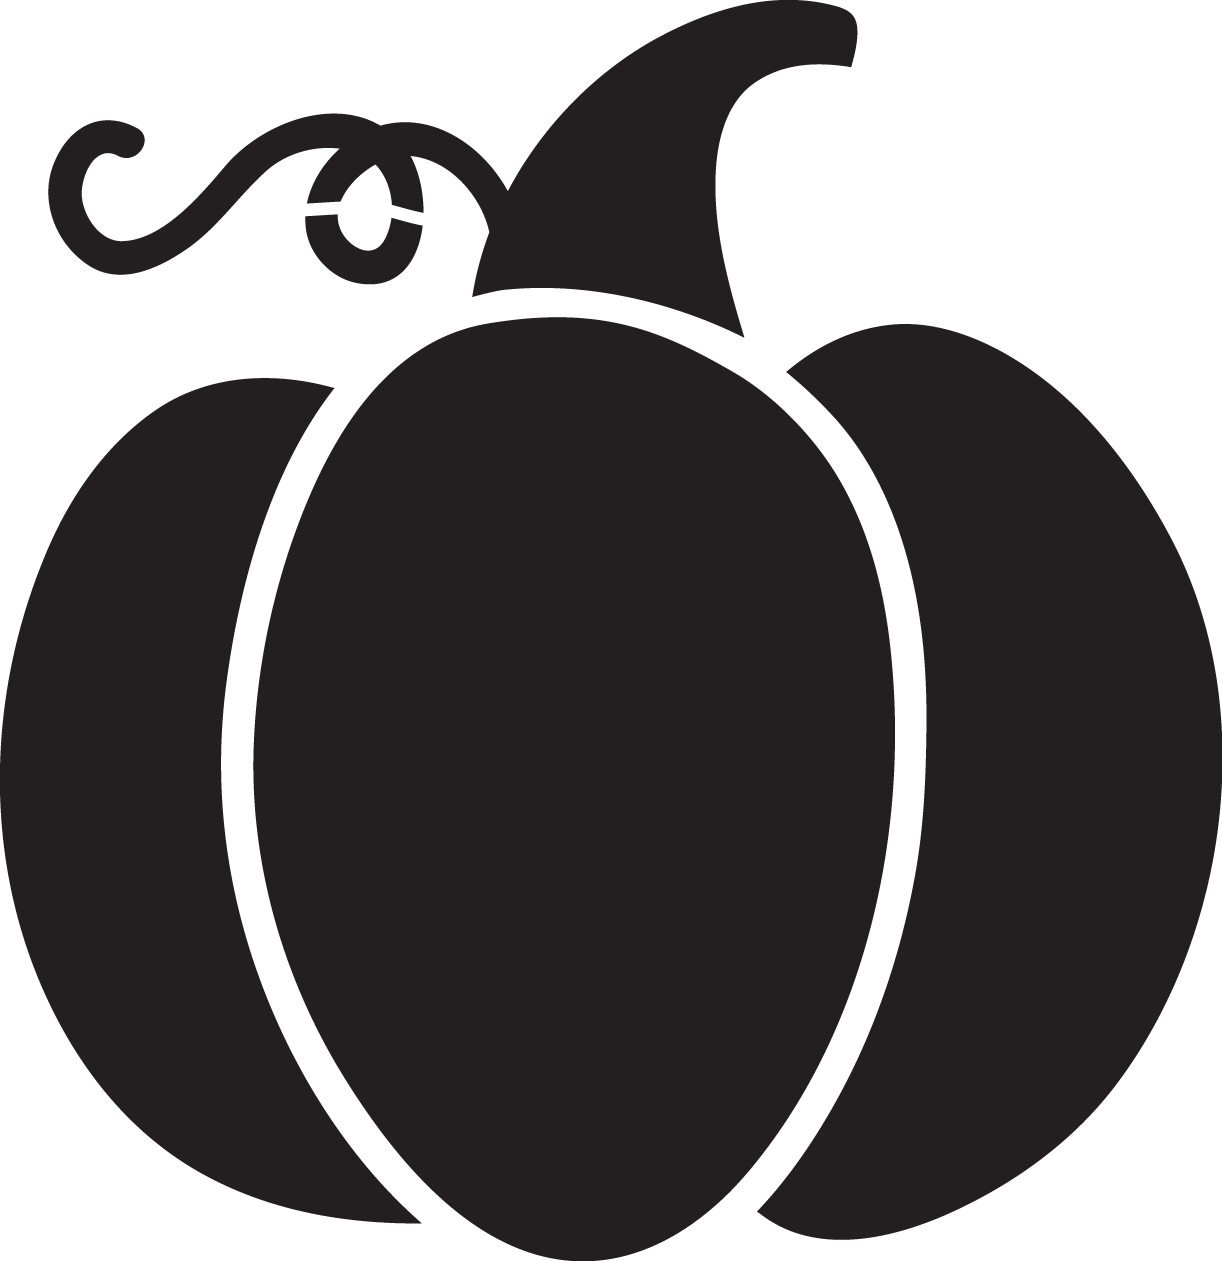 Pumpkin Silhouette at GetDrawings.com | Free for personal ...